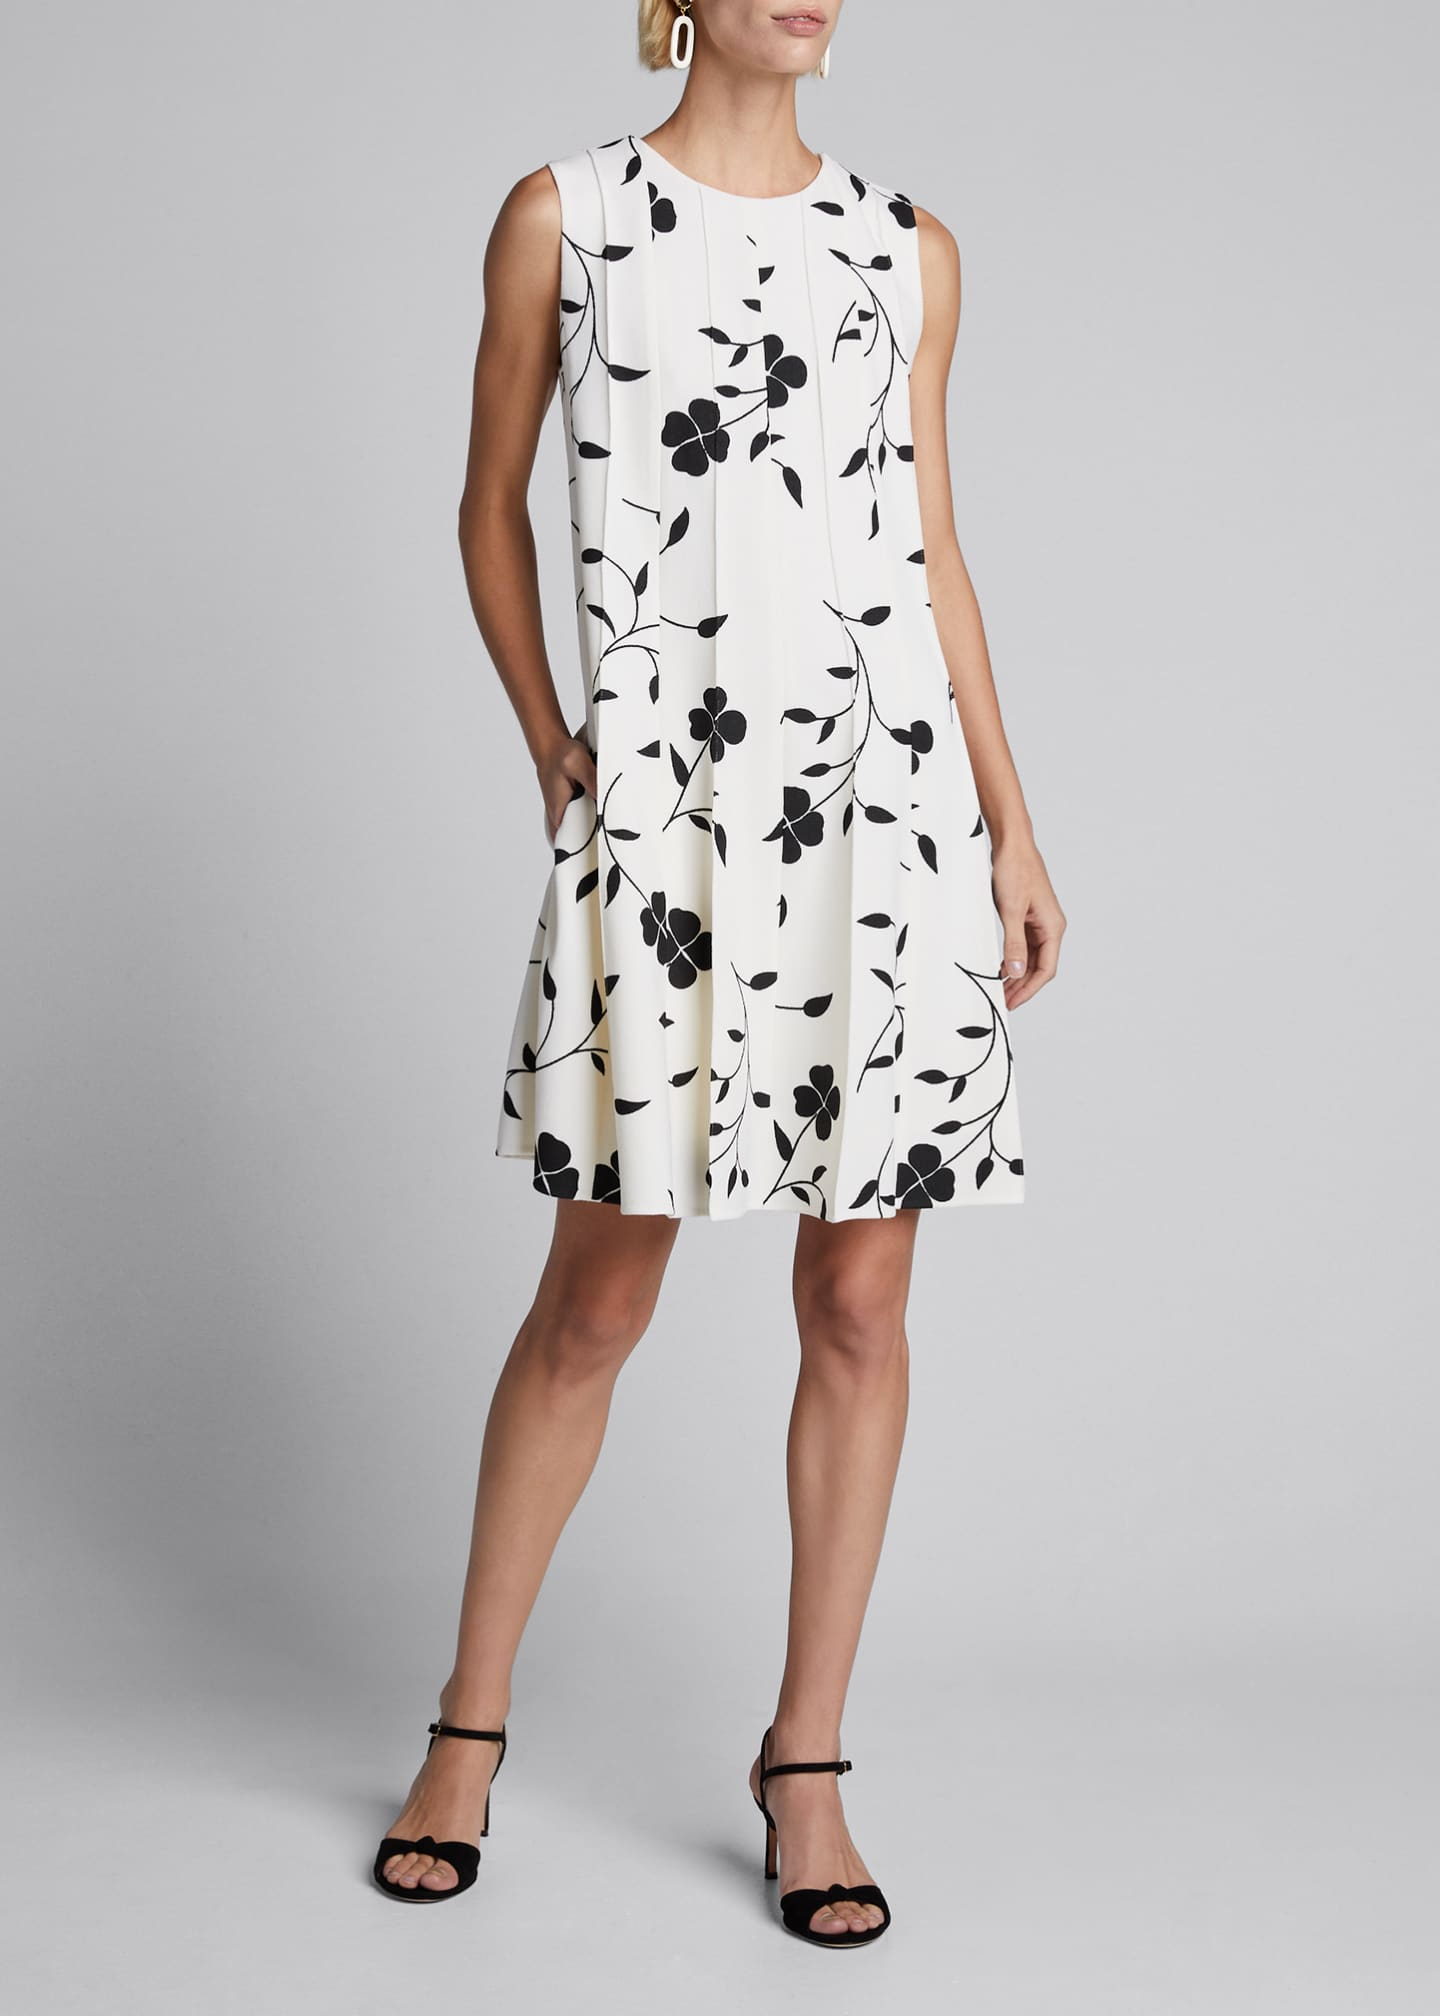 Oscar de la Renta Flower Pleated Sleeveless A-Line